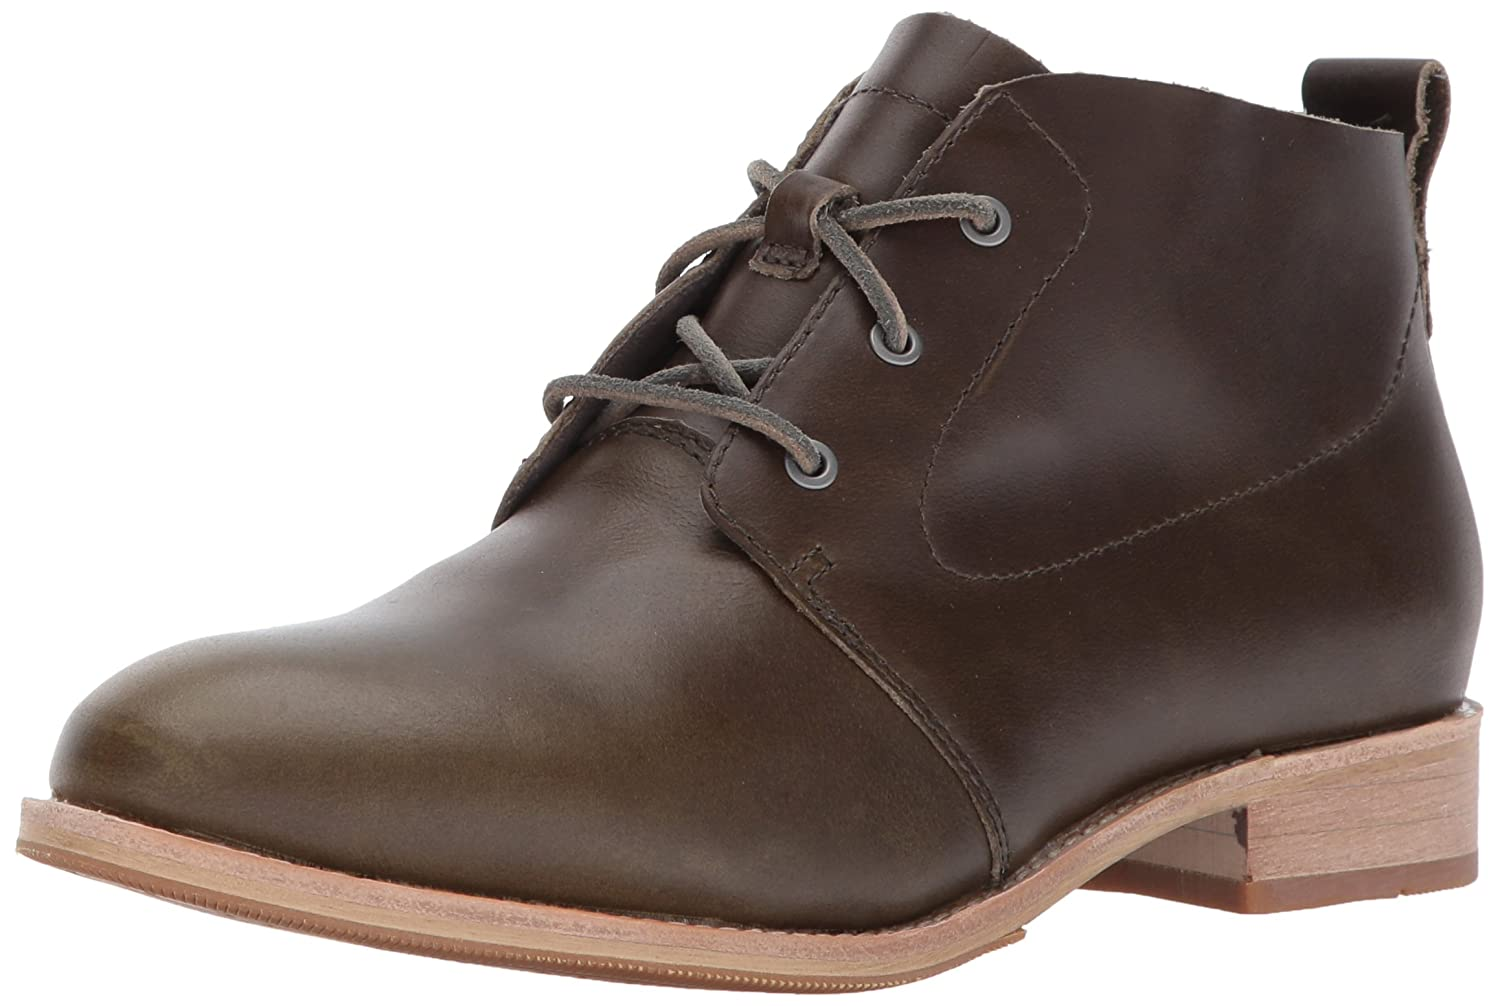 Caterpillar Women's Hester 3 Eyelet Leather Chukka Bootie Ankle Boot B01NBKCA0A 6 M US|Olive